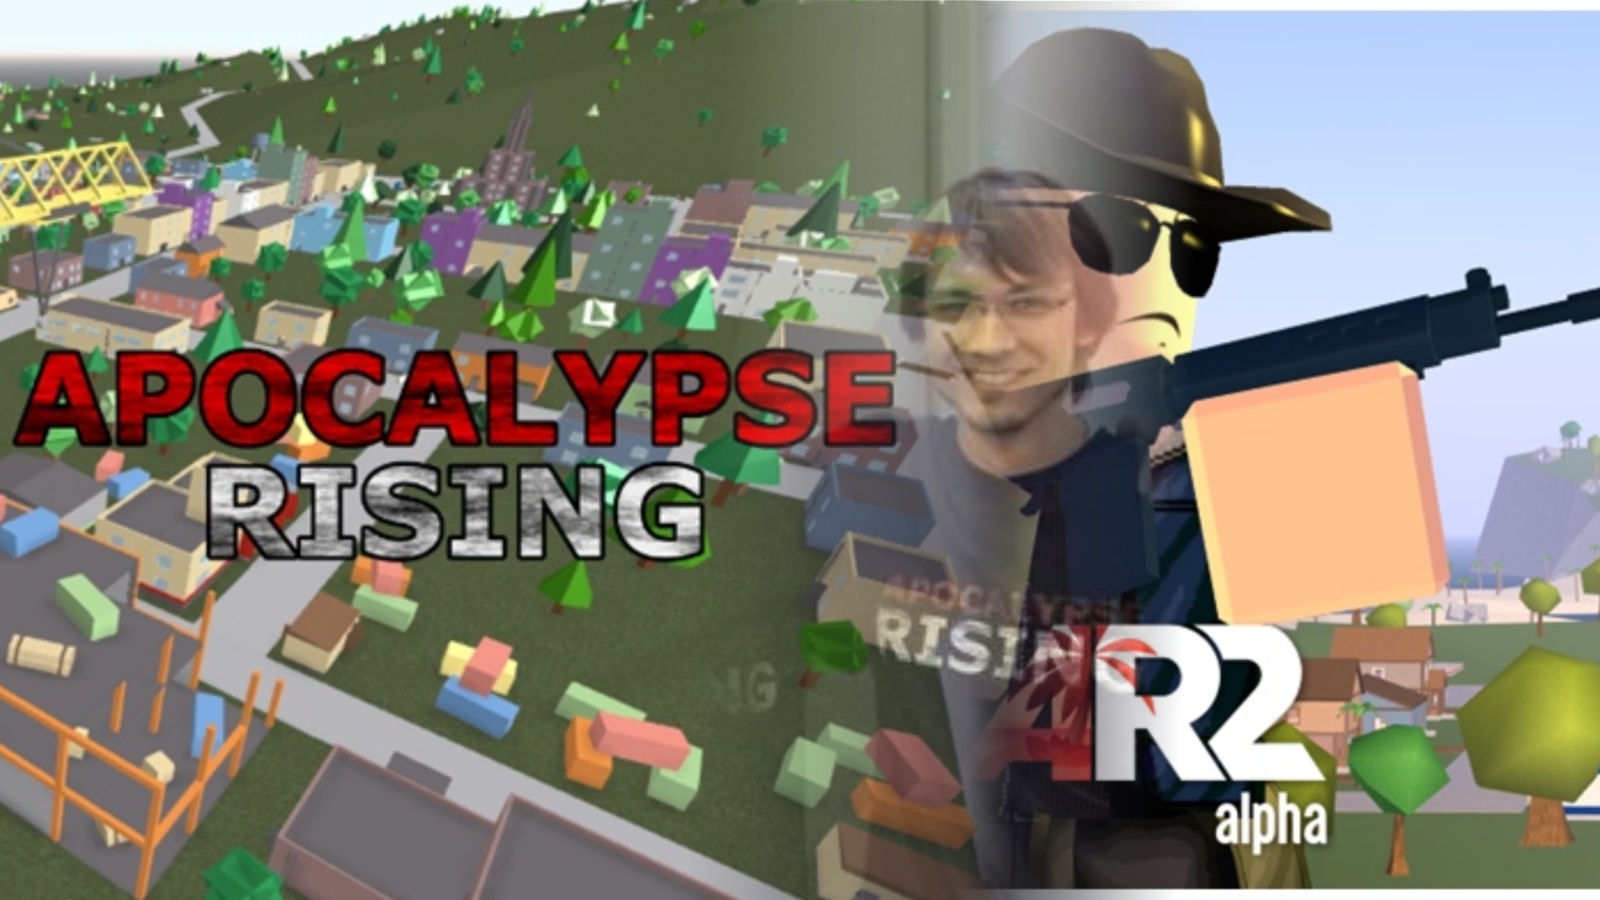 Petition Fix Apocalypse Rising 1 Hackers To Restore The Games